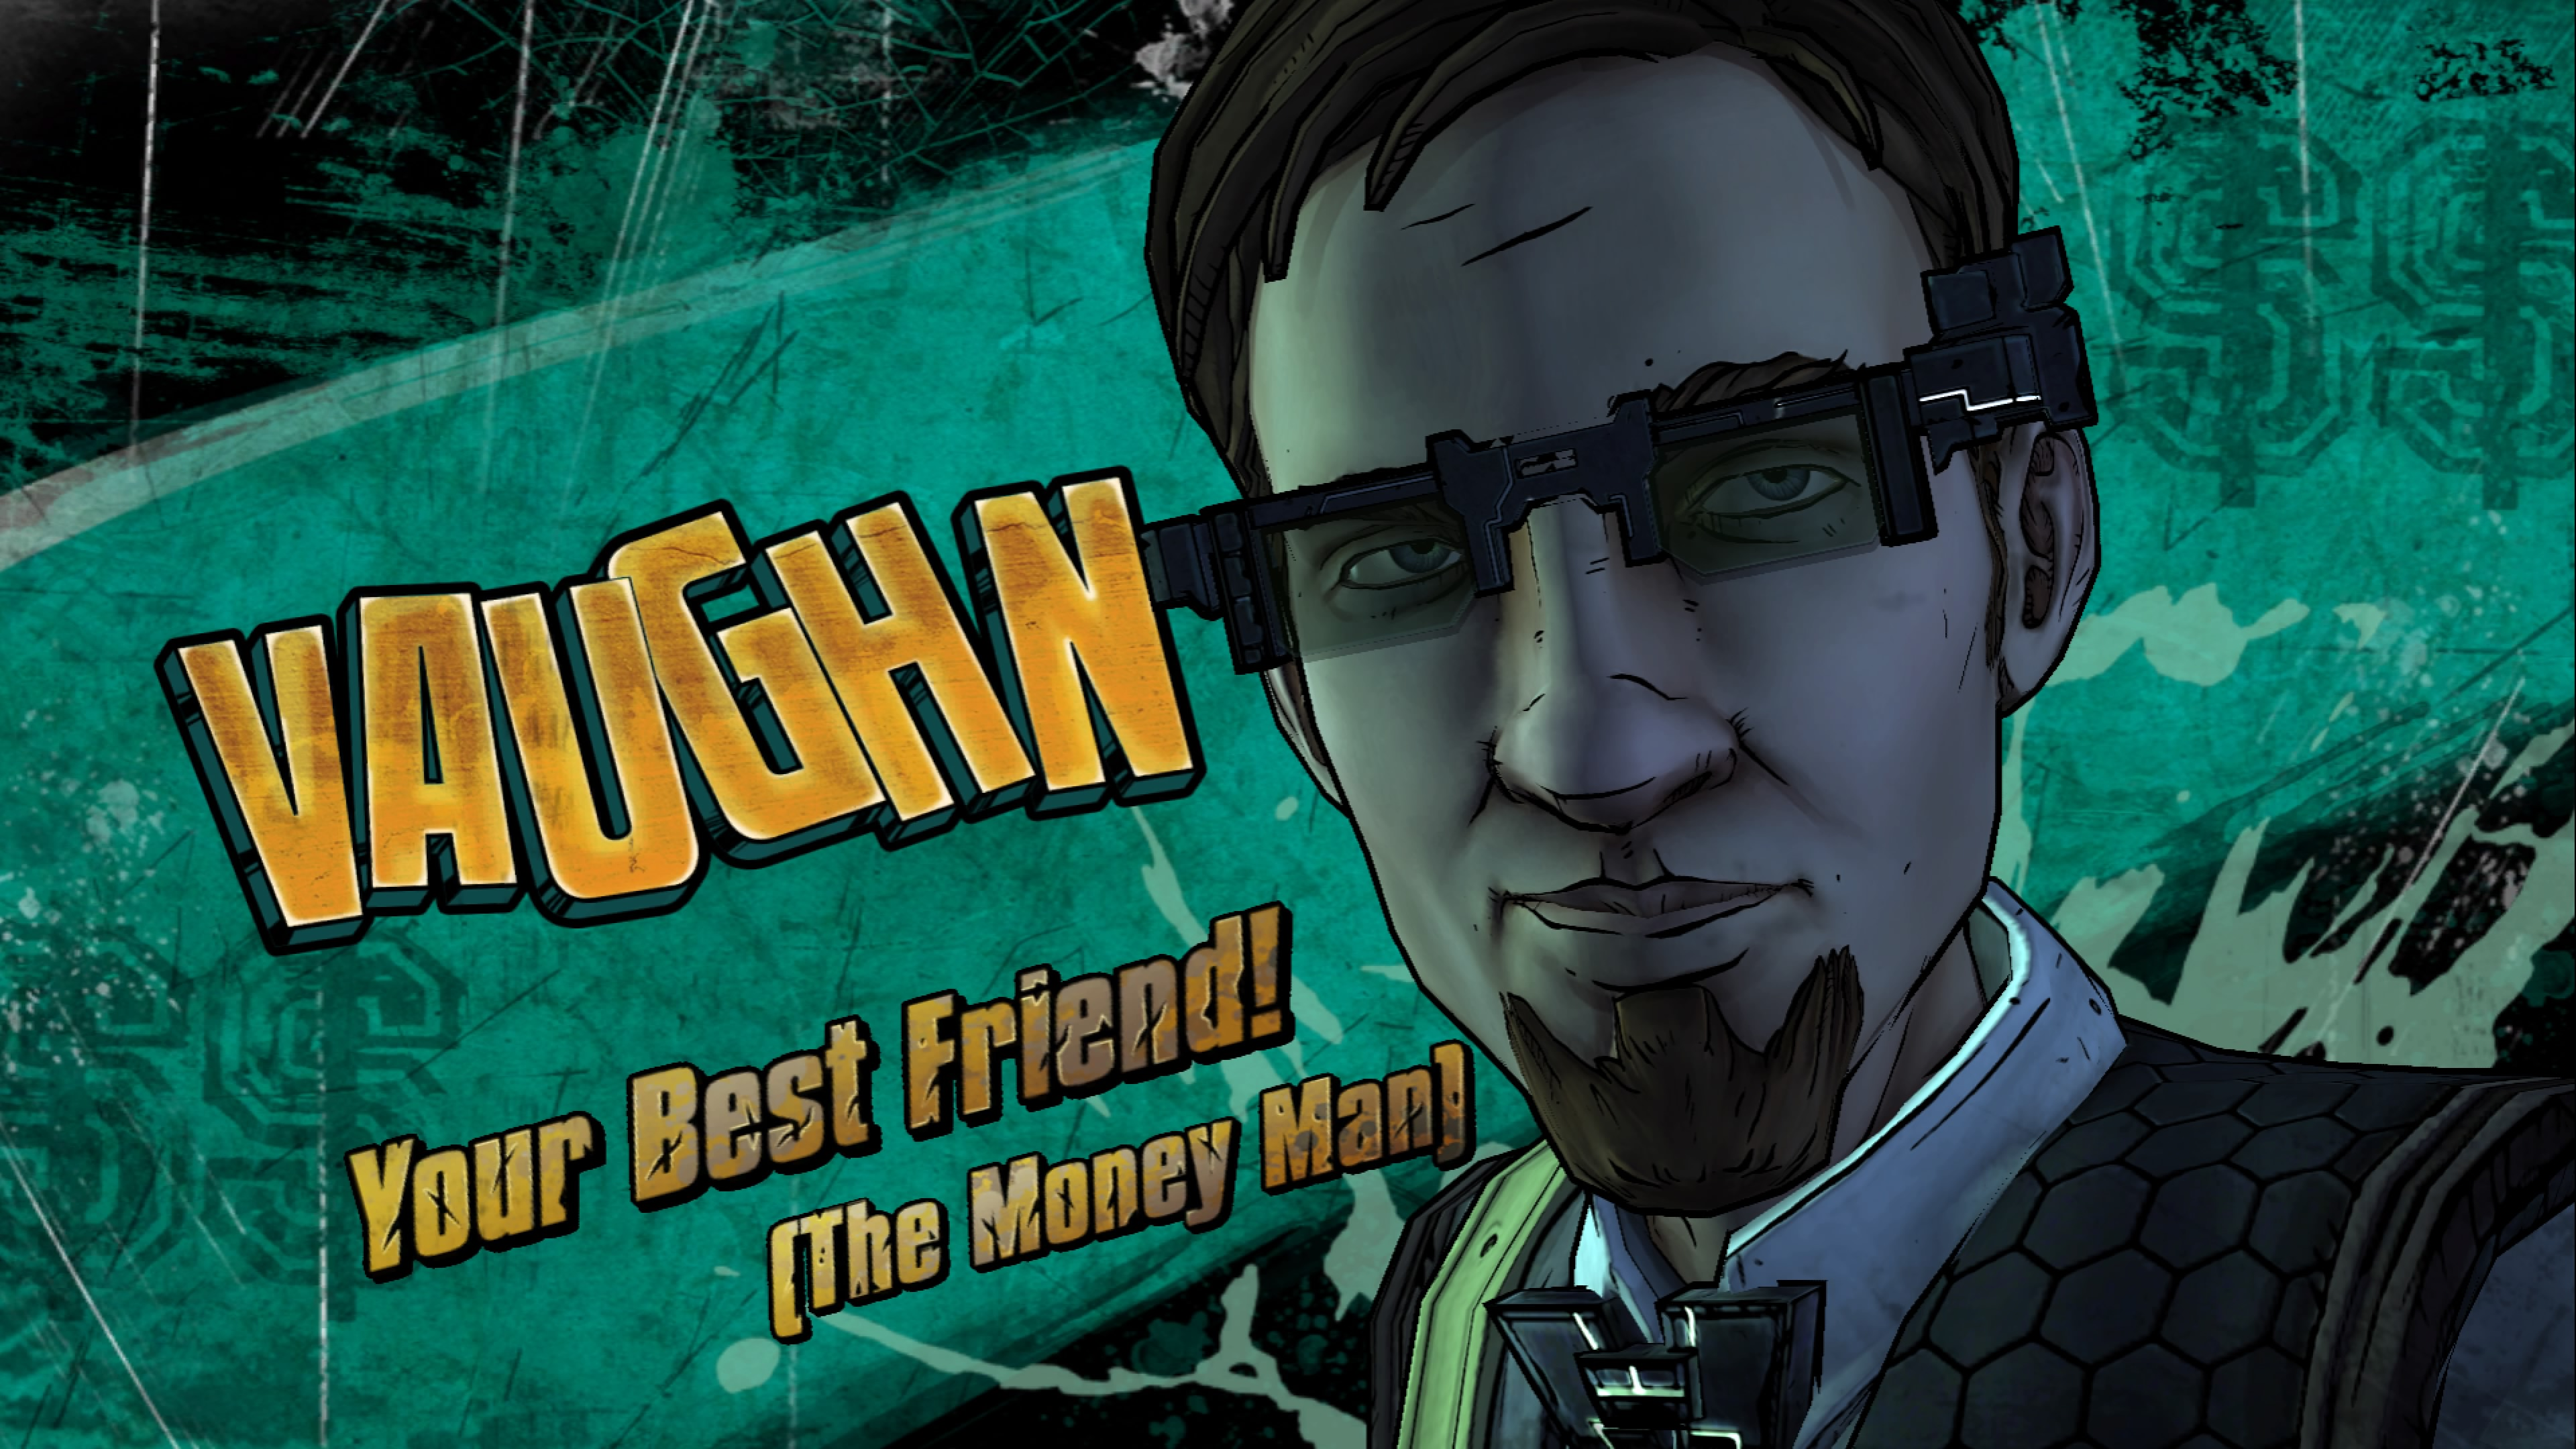 Tales from the Borderlands Vaughn, perin komea hahmo